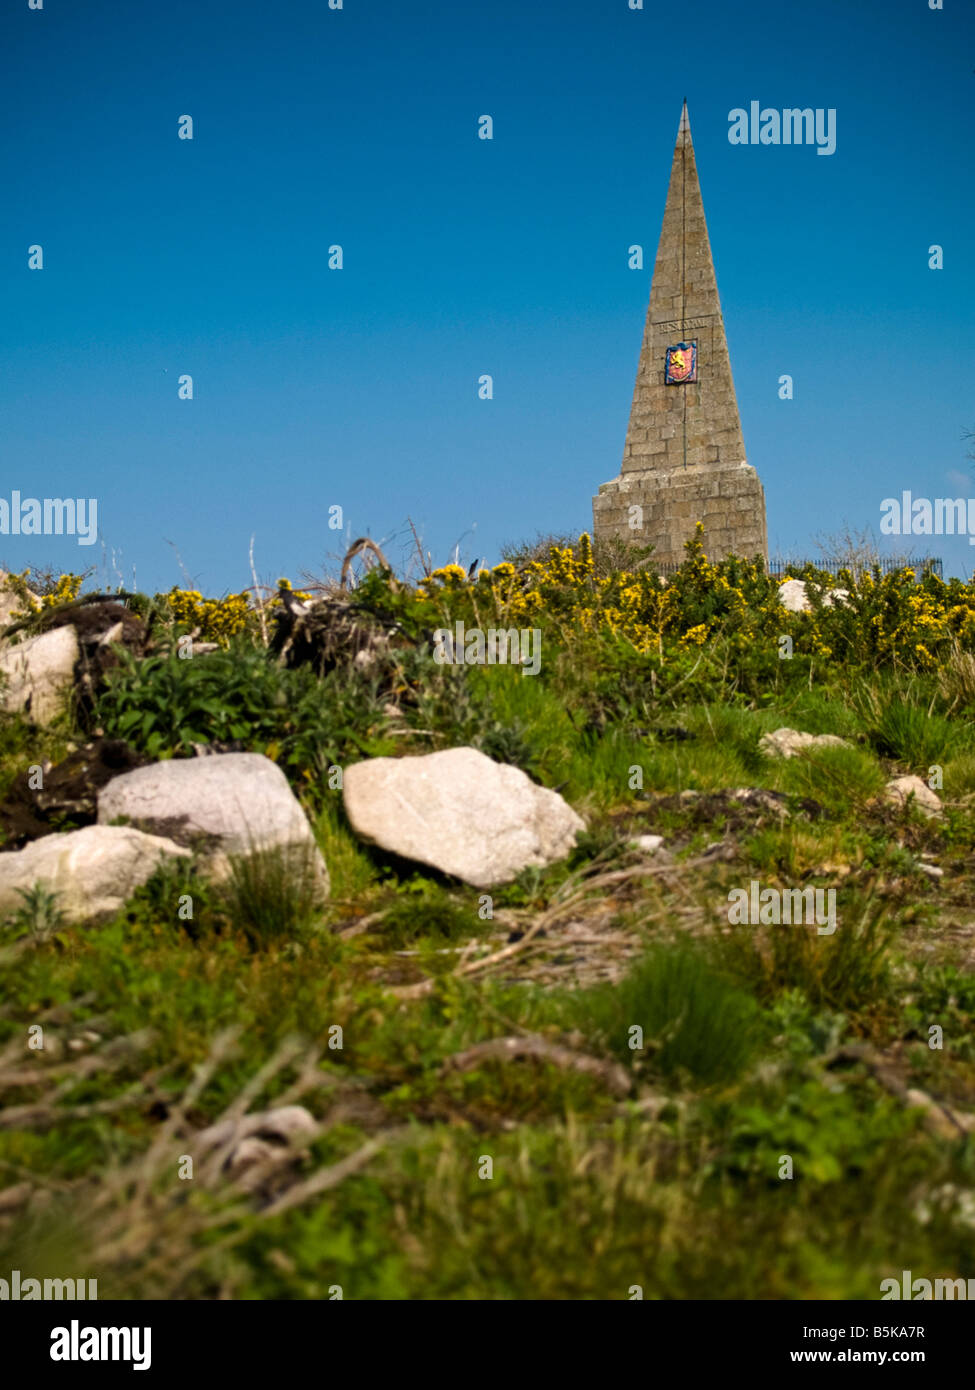 Knills Steeple, St Ives, Cornwall - Stock Image